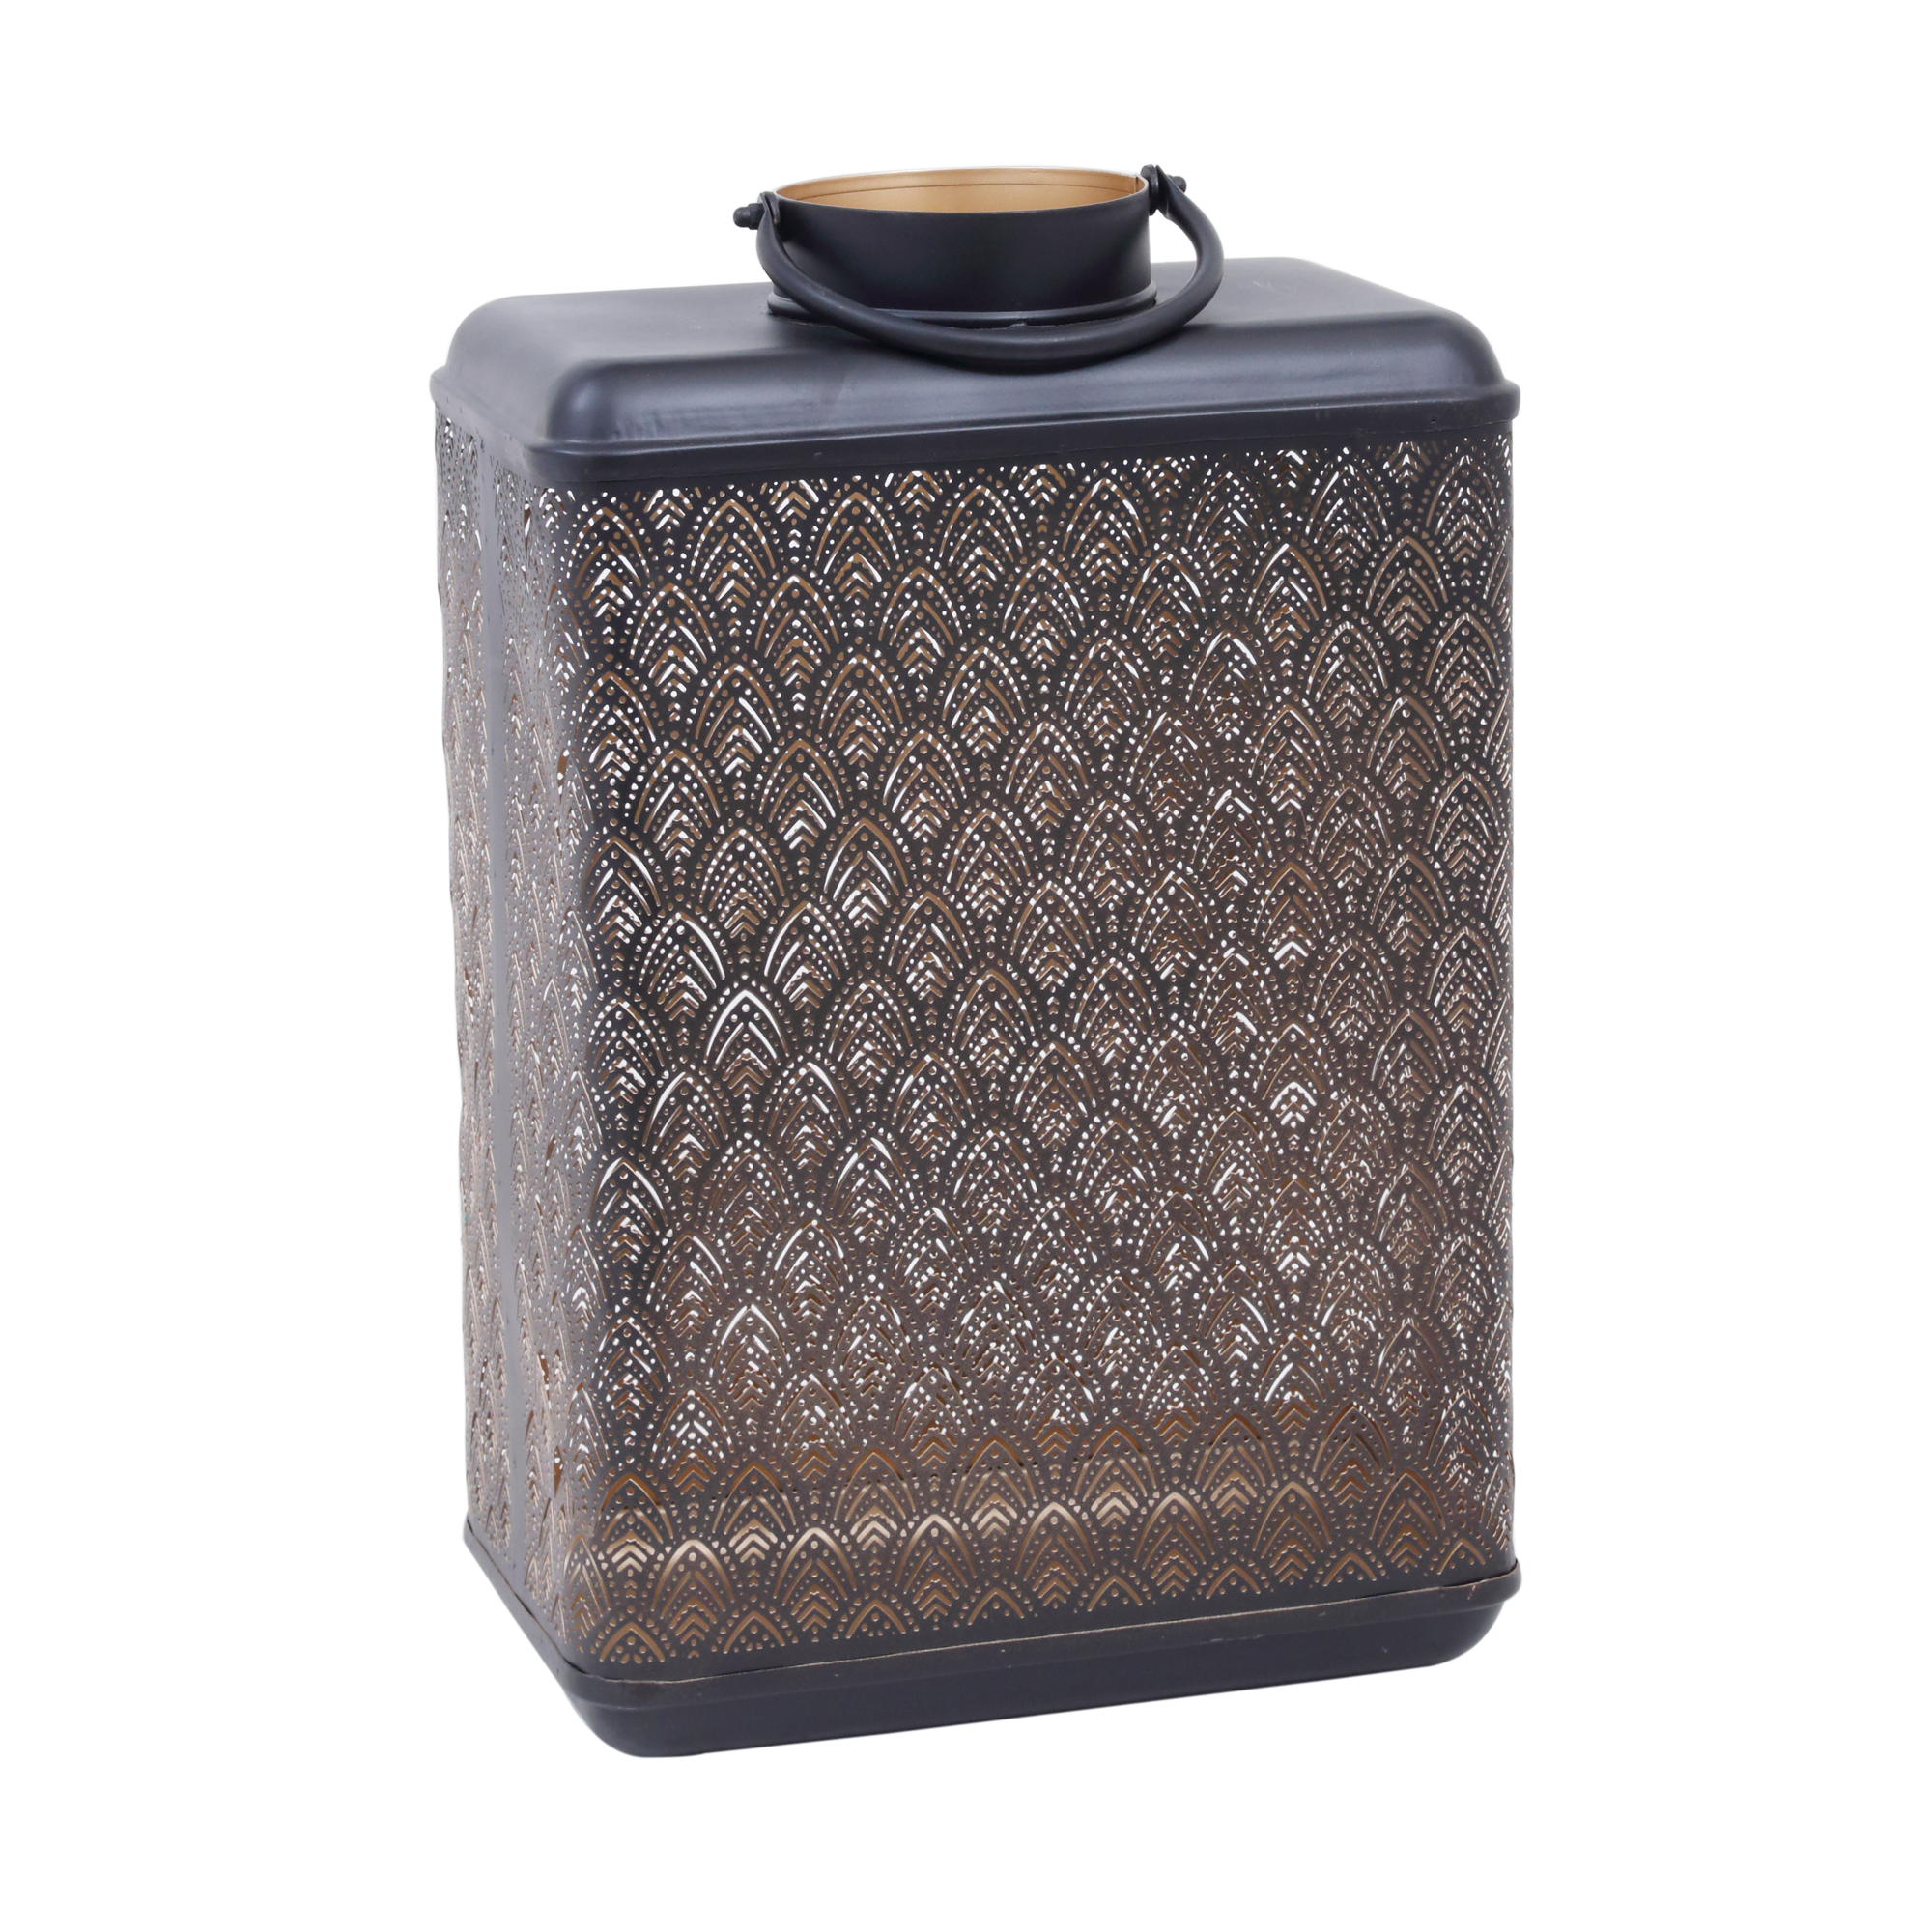 djevo black iron lantern gatsby votive rectangle large £125